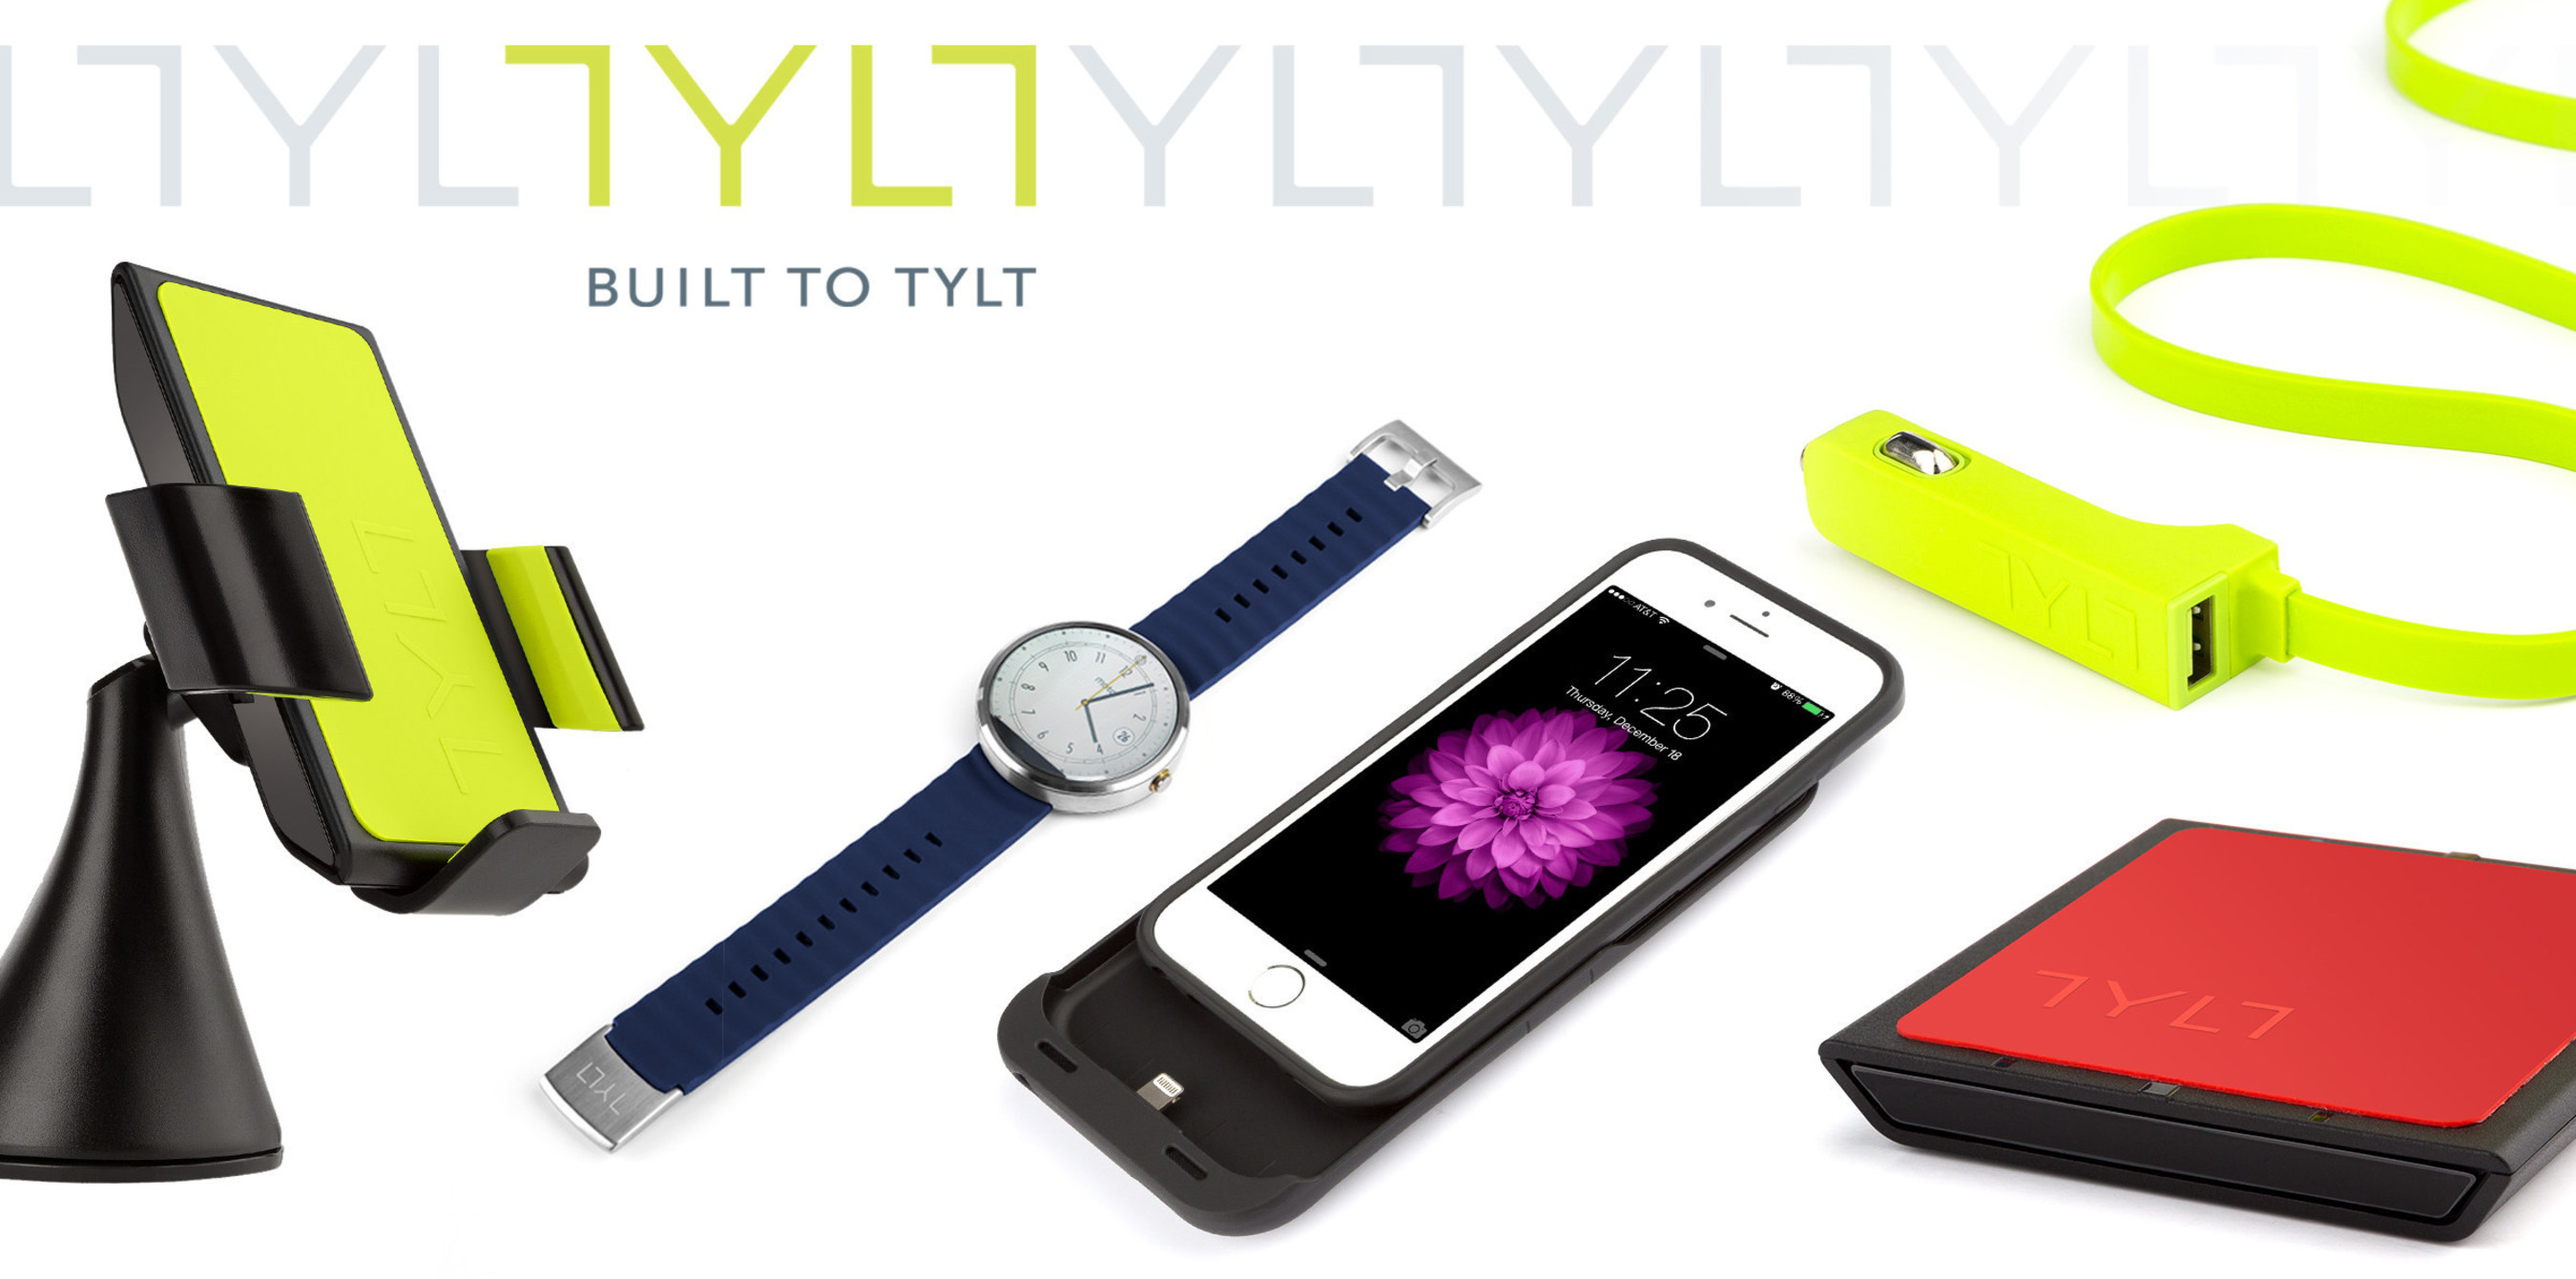 Visit TYLT at booth 30906 - South Hall 3 during CES 2015 to see the company's new charging accessories, ...